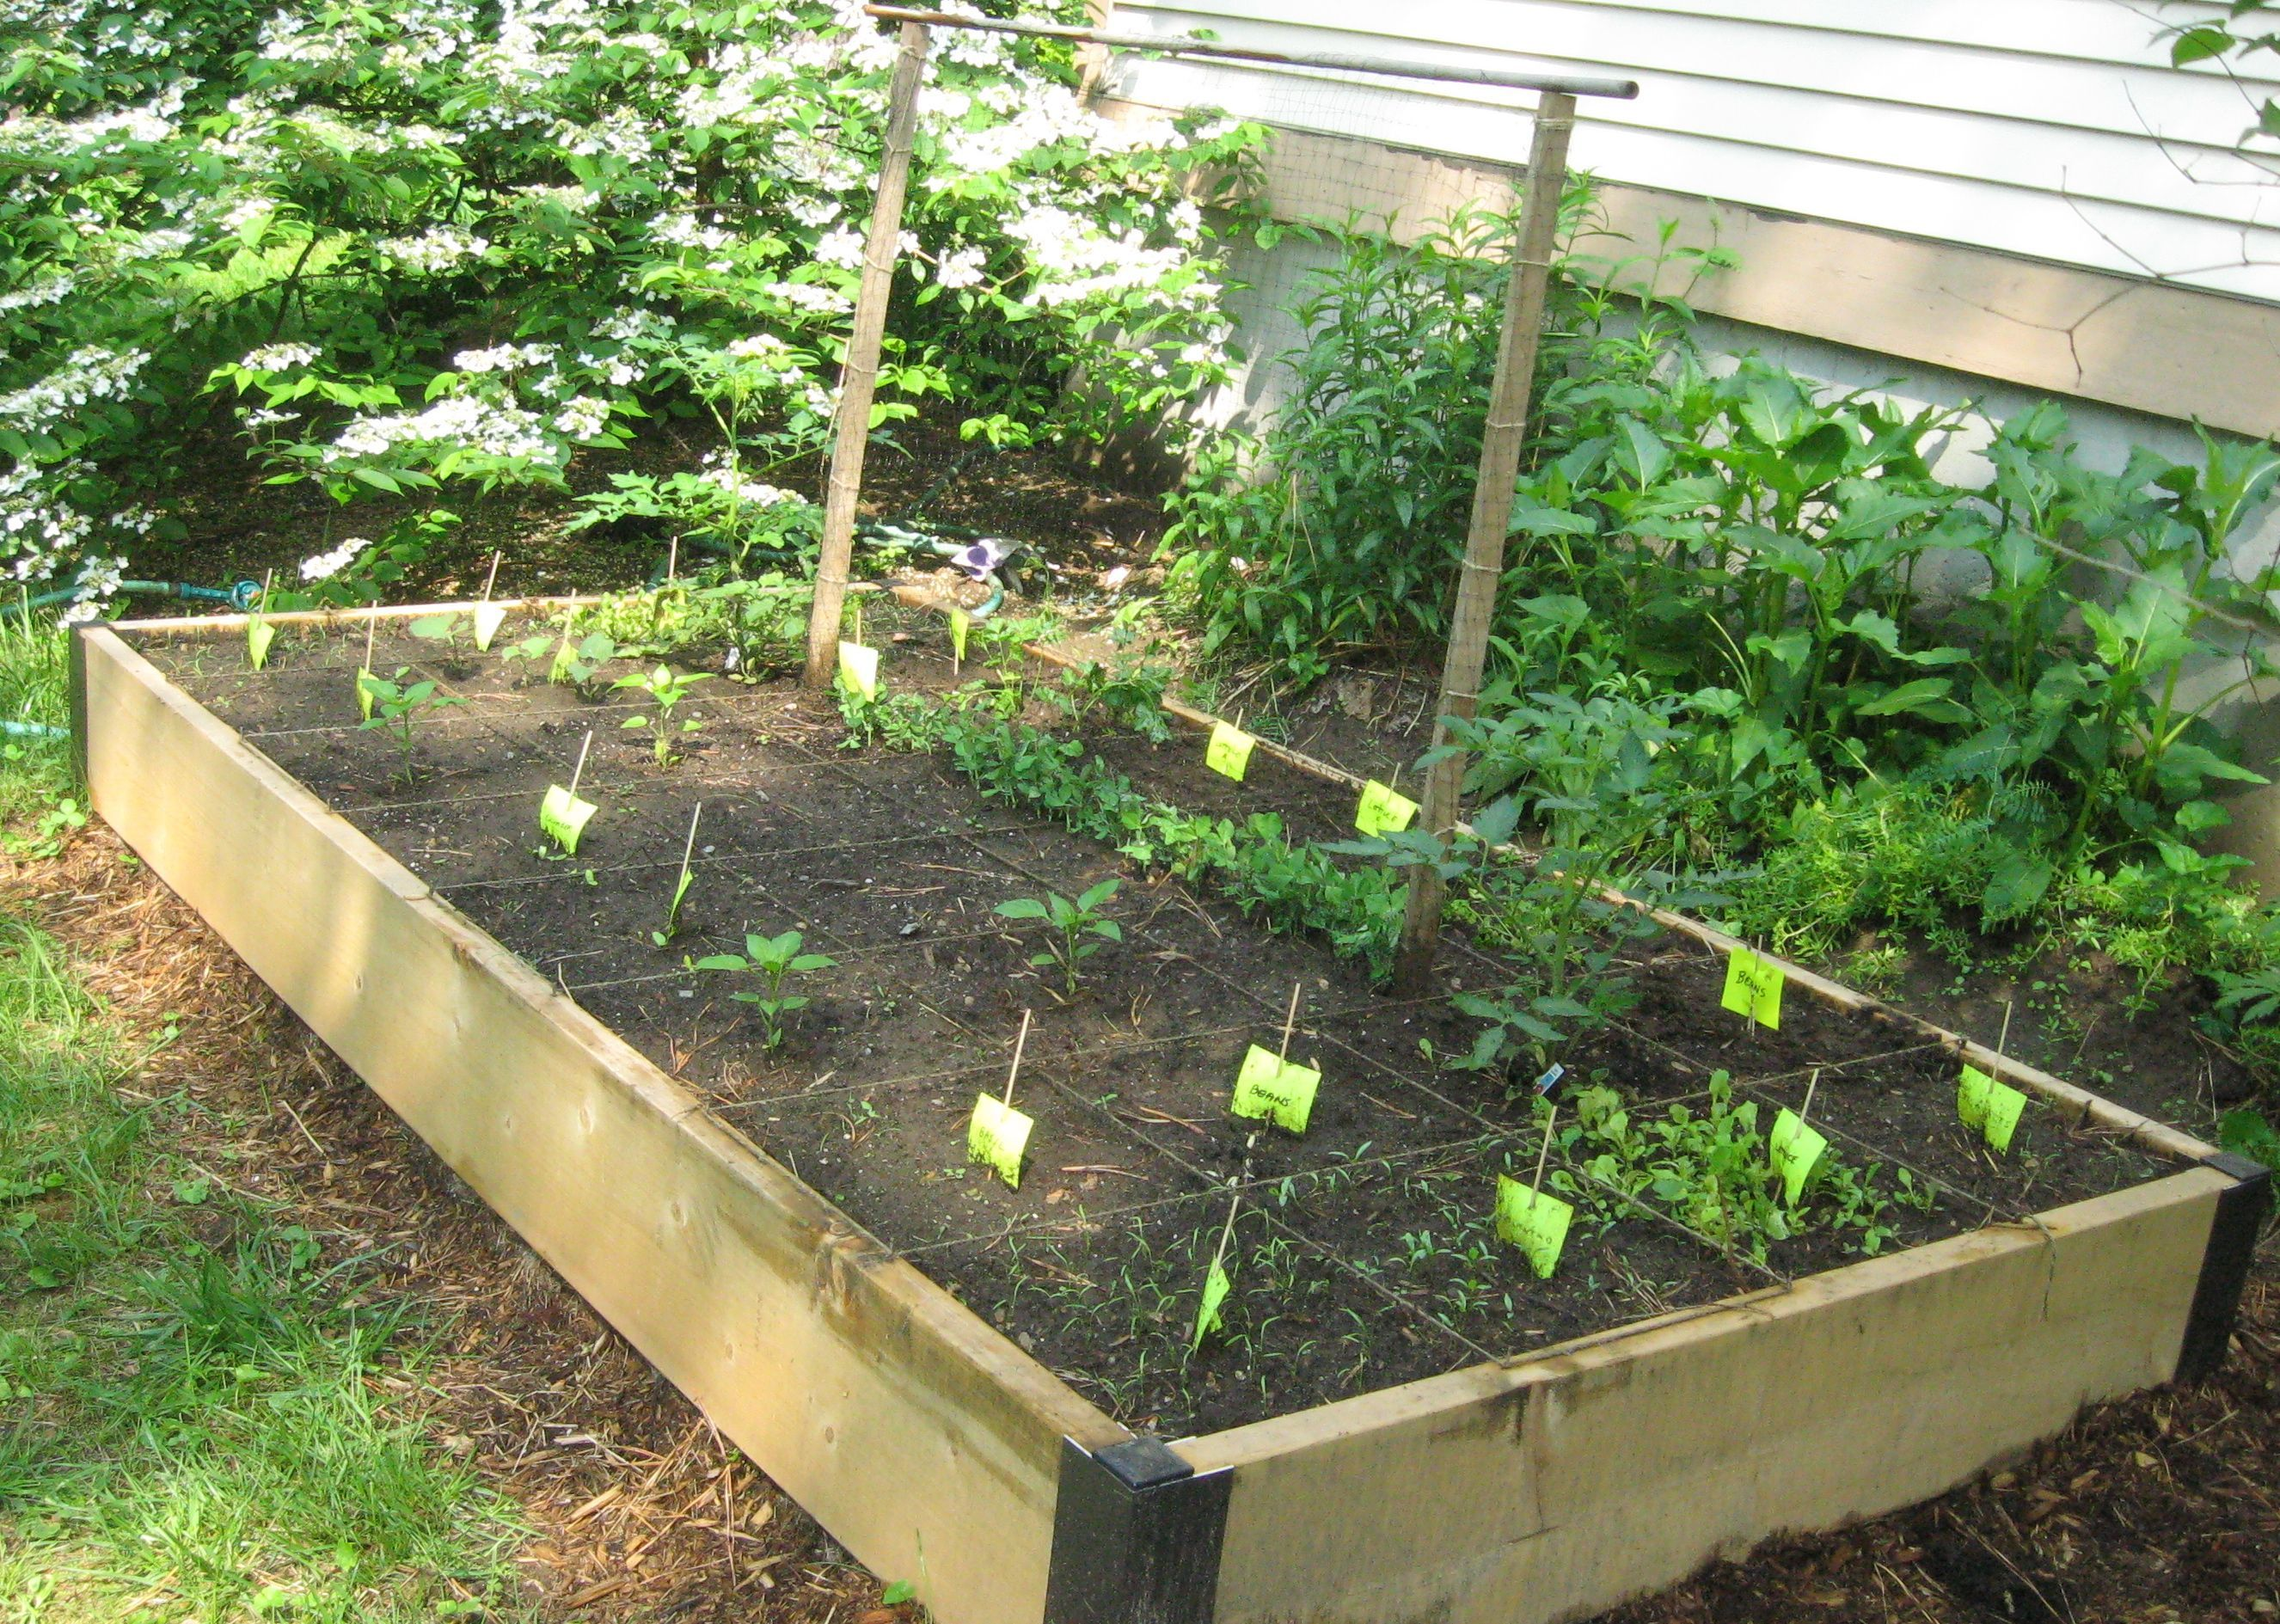 43 Raised Garden Beds Vegetables Backyards (With images ...